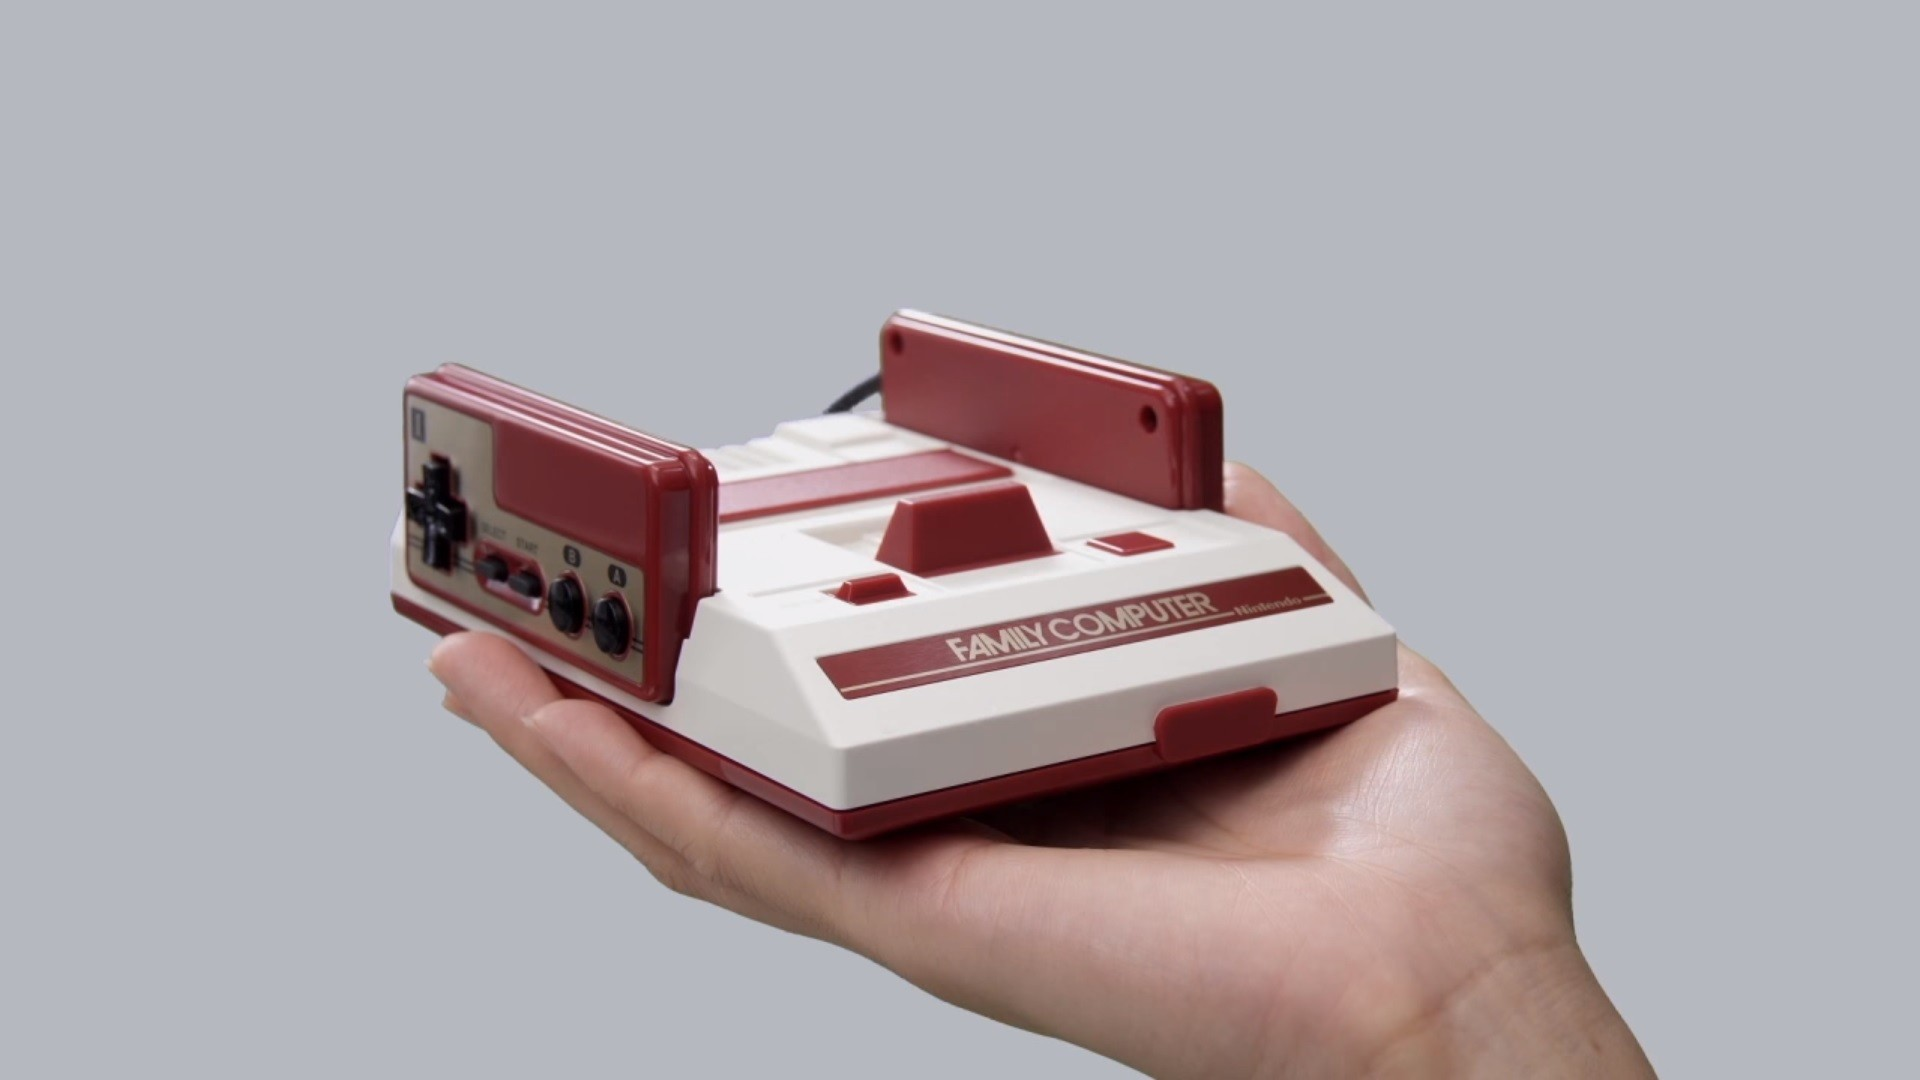 What Is This, a Famicom for Ants?